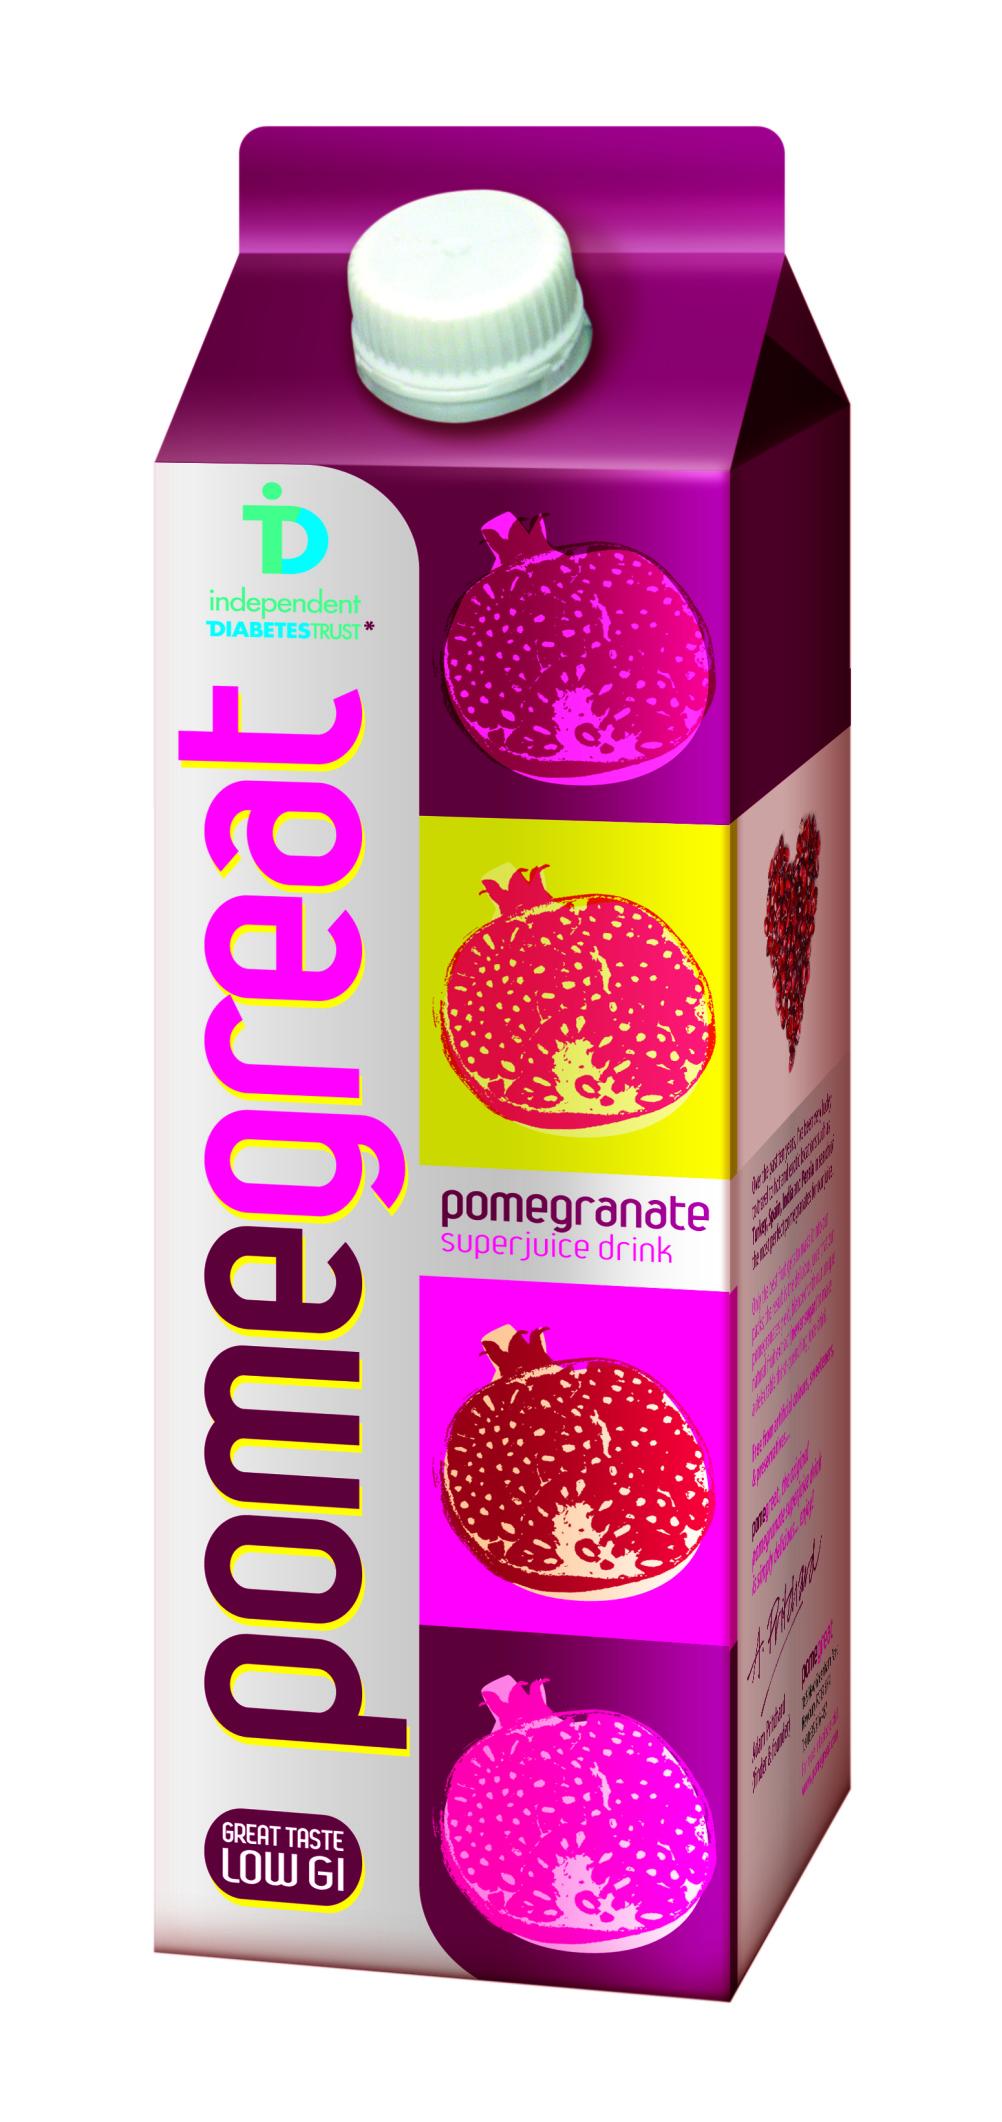 Pomegreat design by Parker Williams